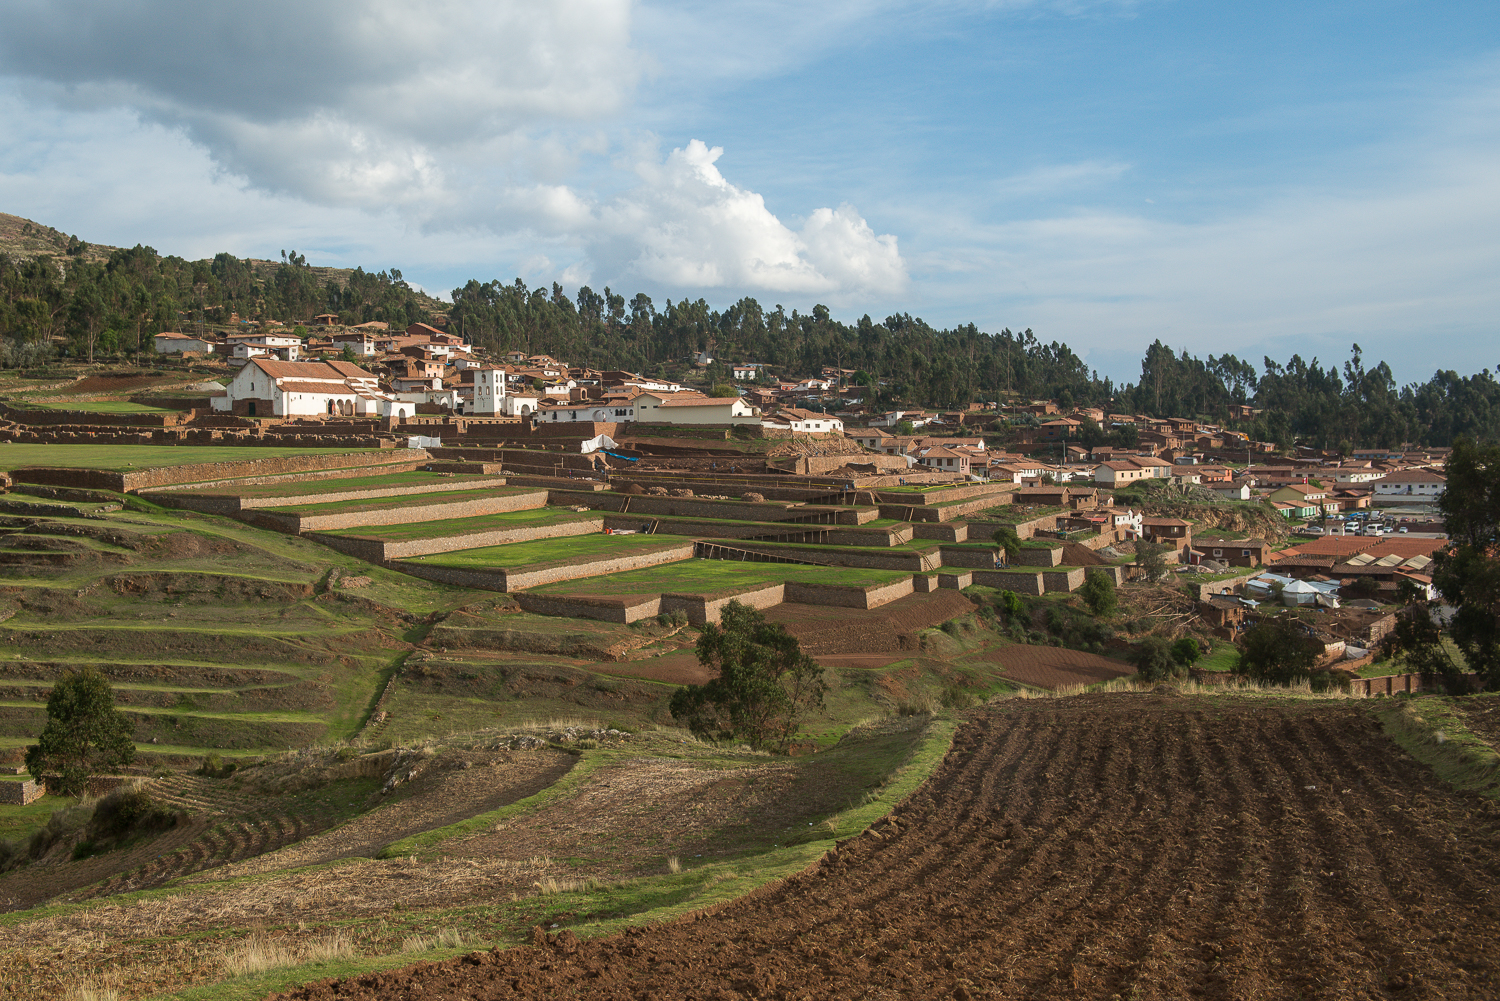 The town of Chinchero.